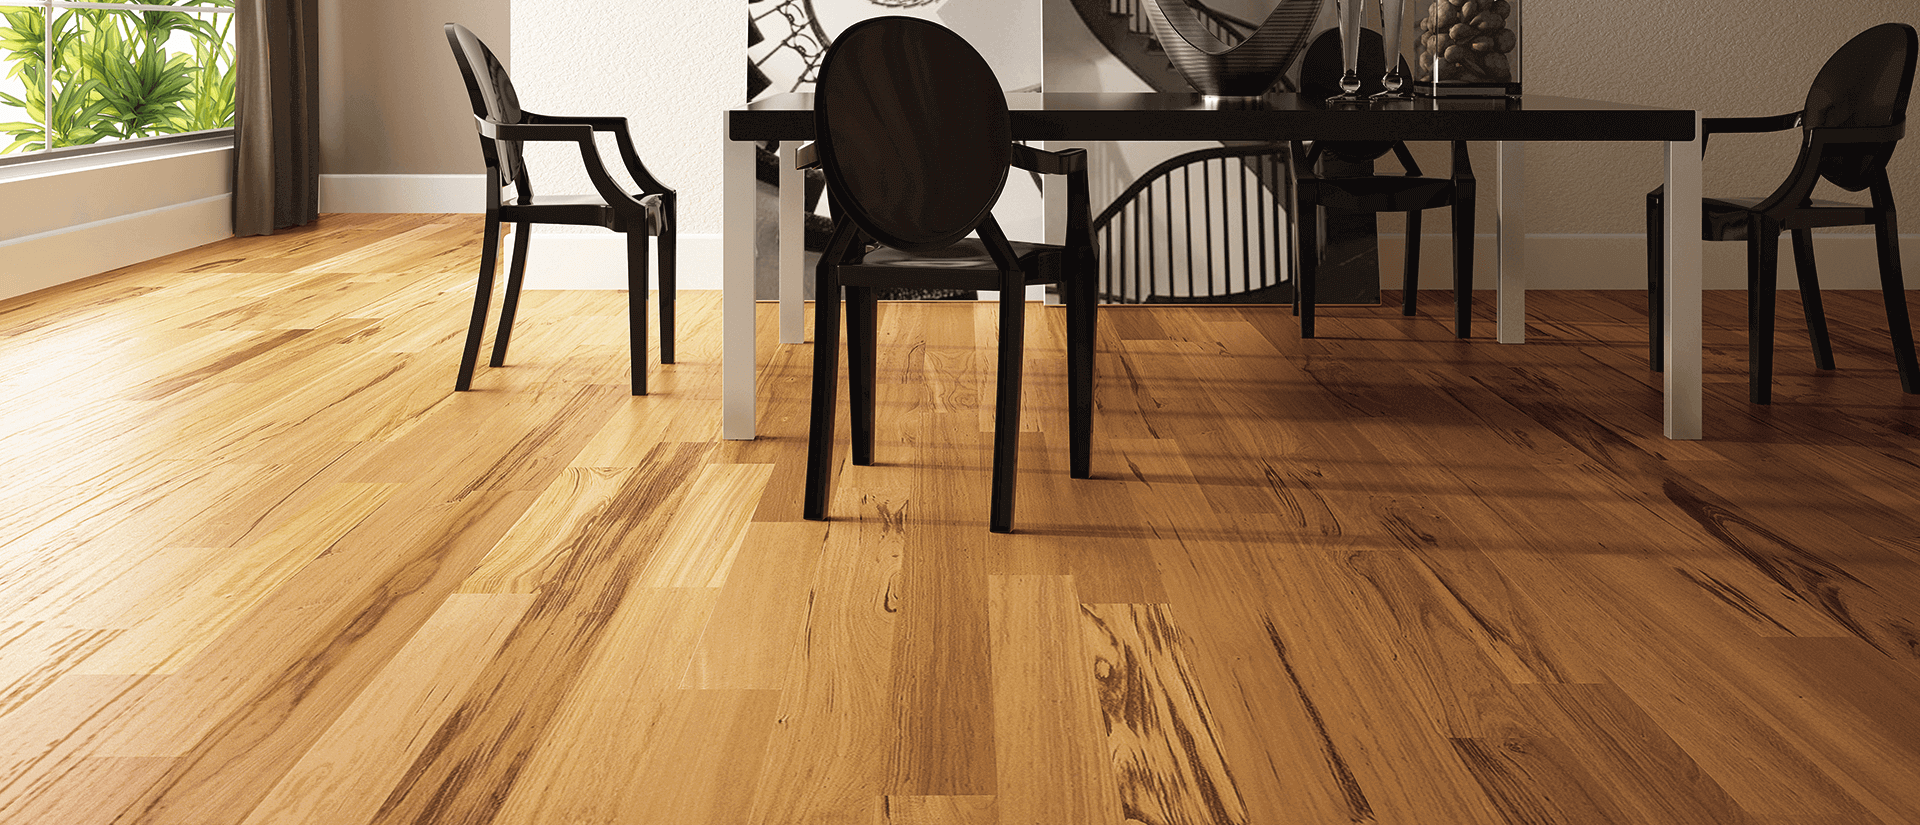 All You Need To Know About Bamboo Floors Affordable Wood